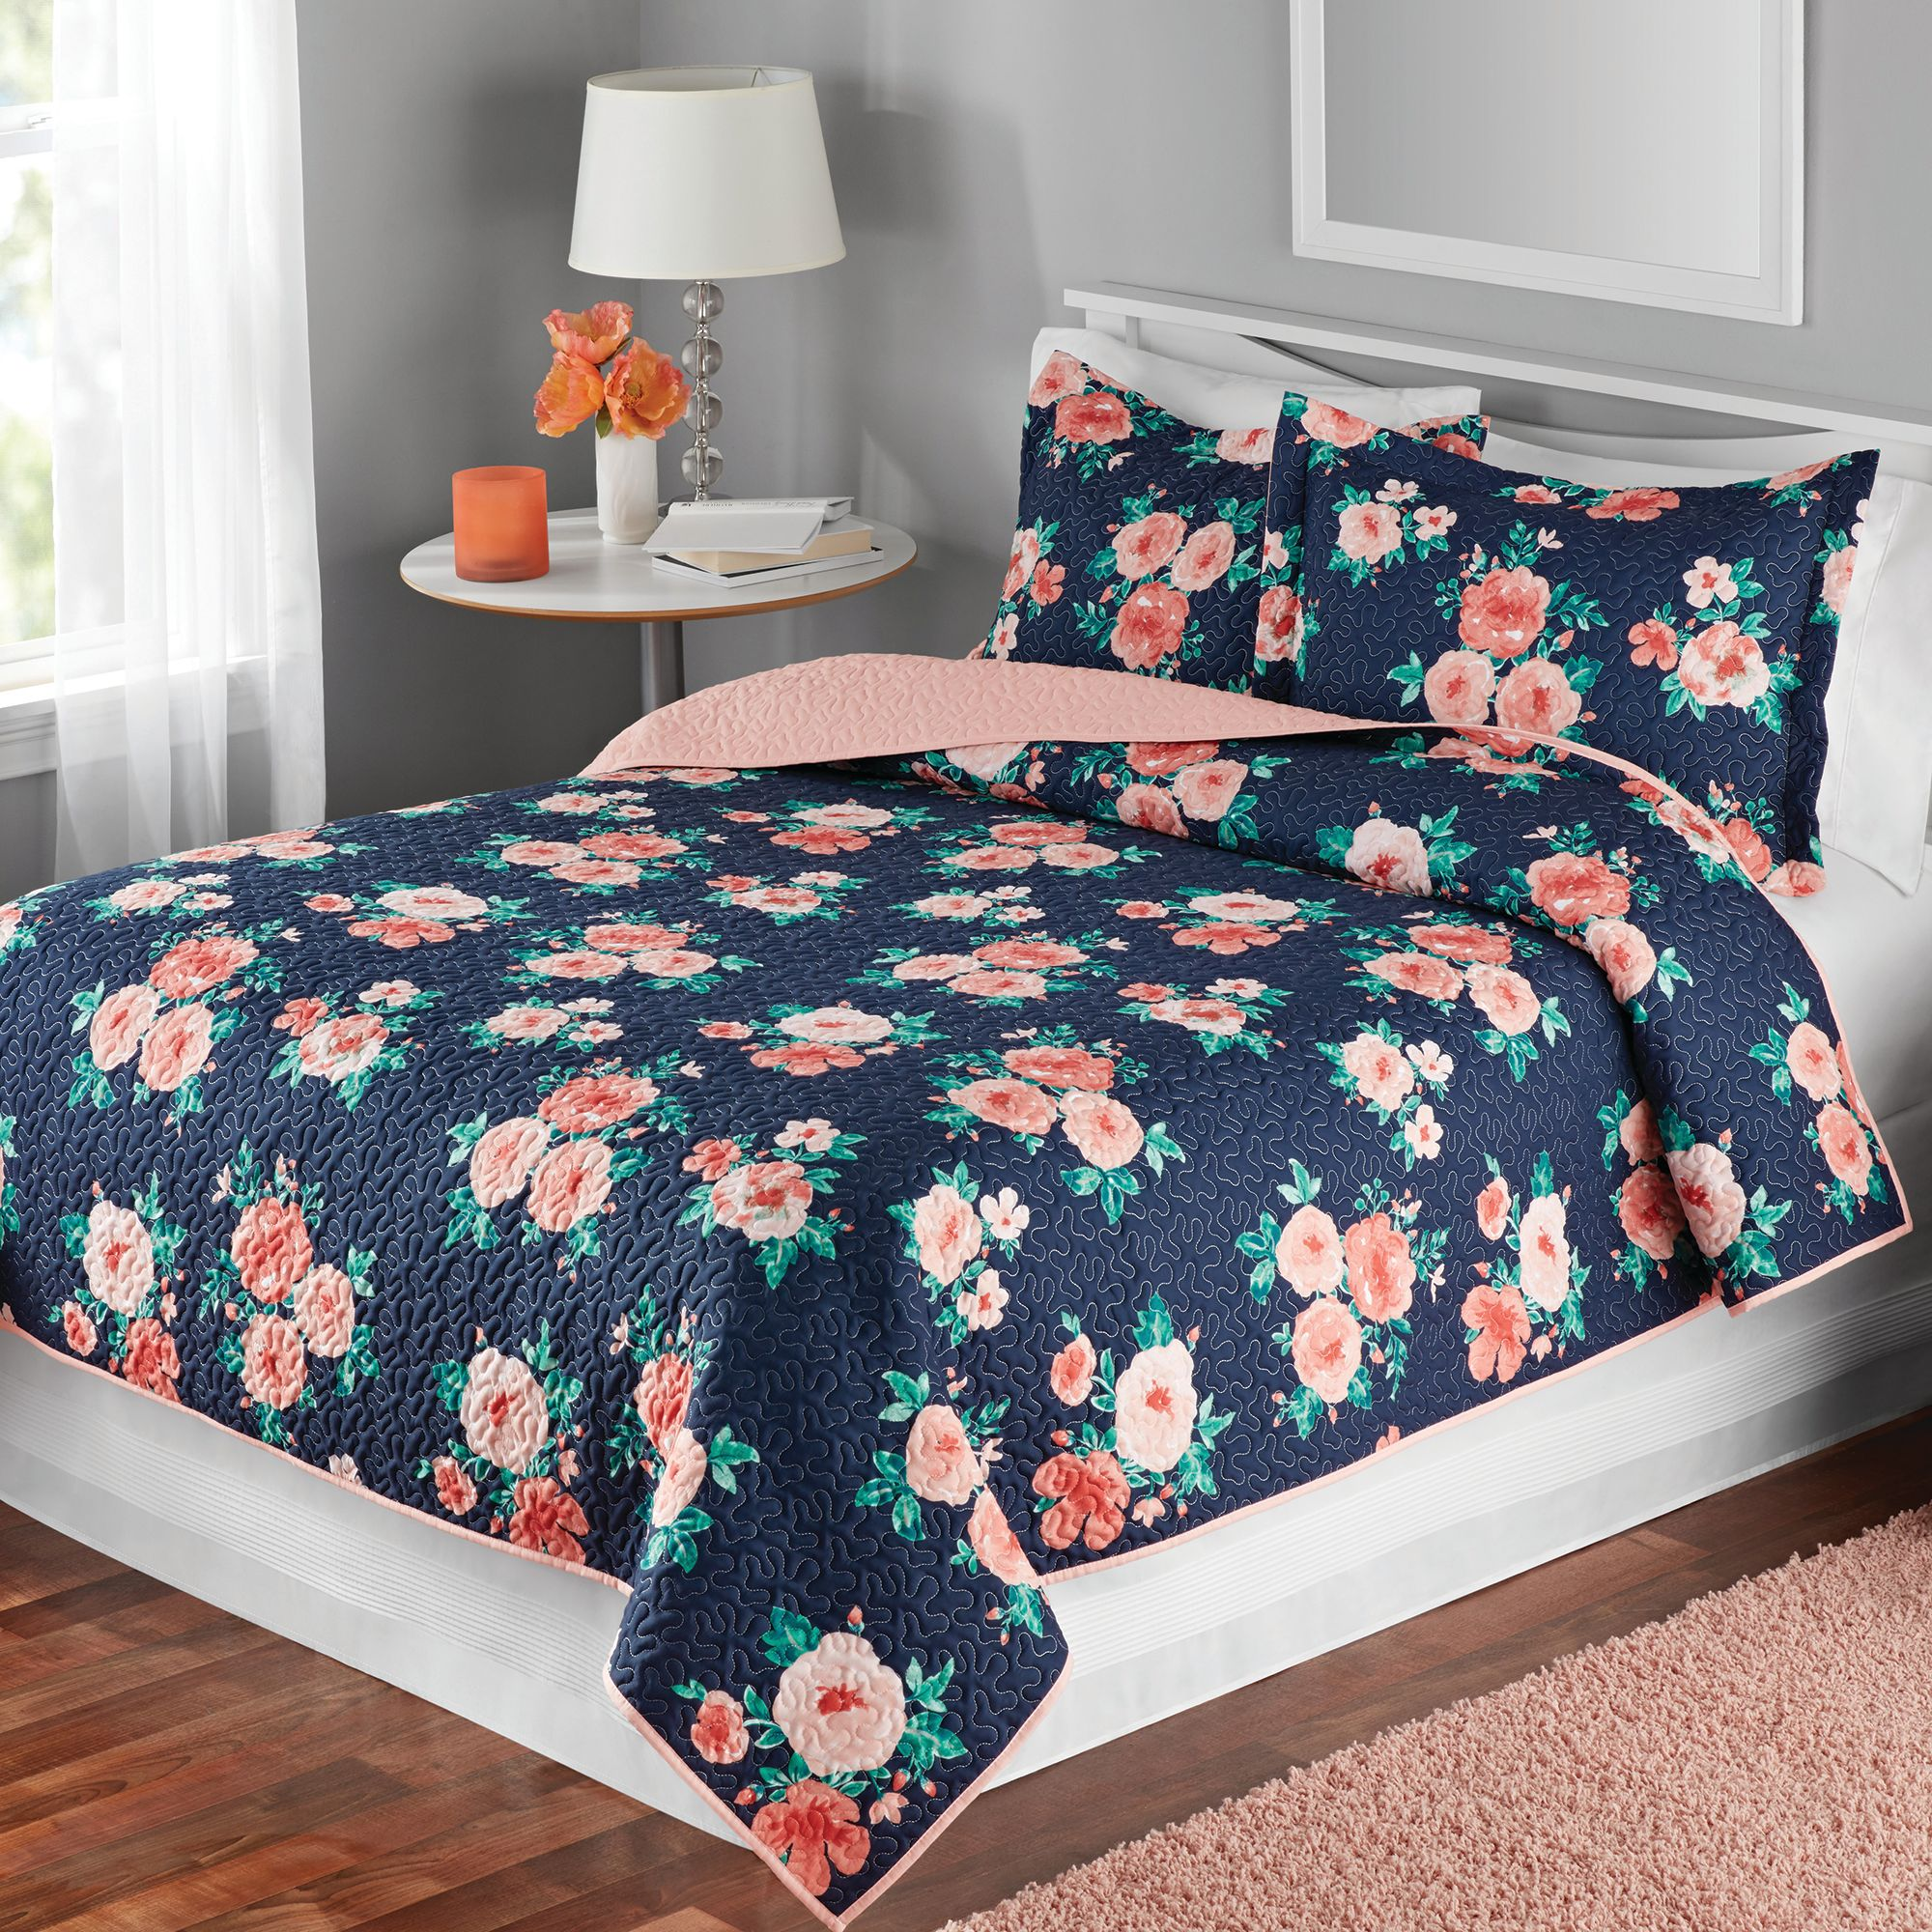 Mainstays Floral Quilt and Sham Bedding Collection